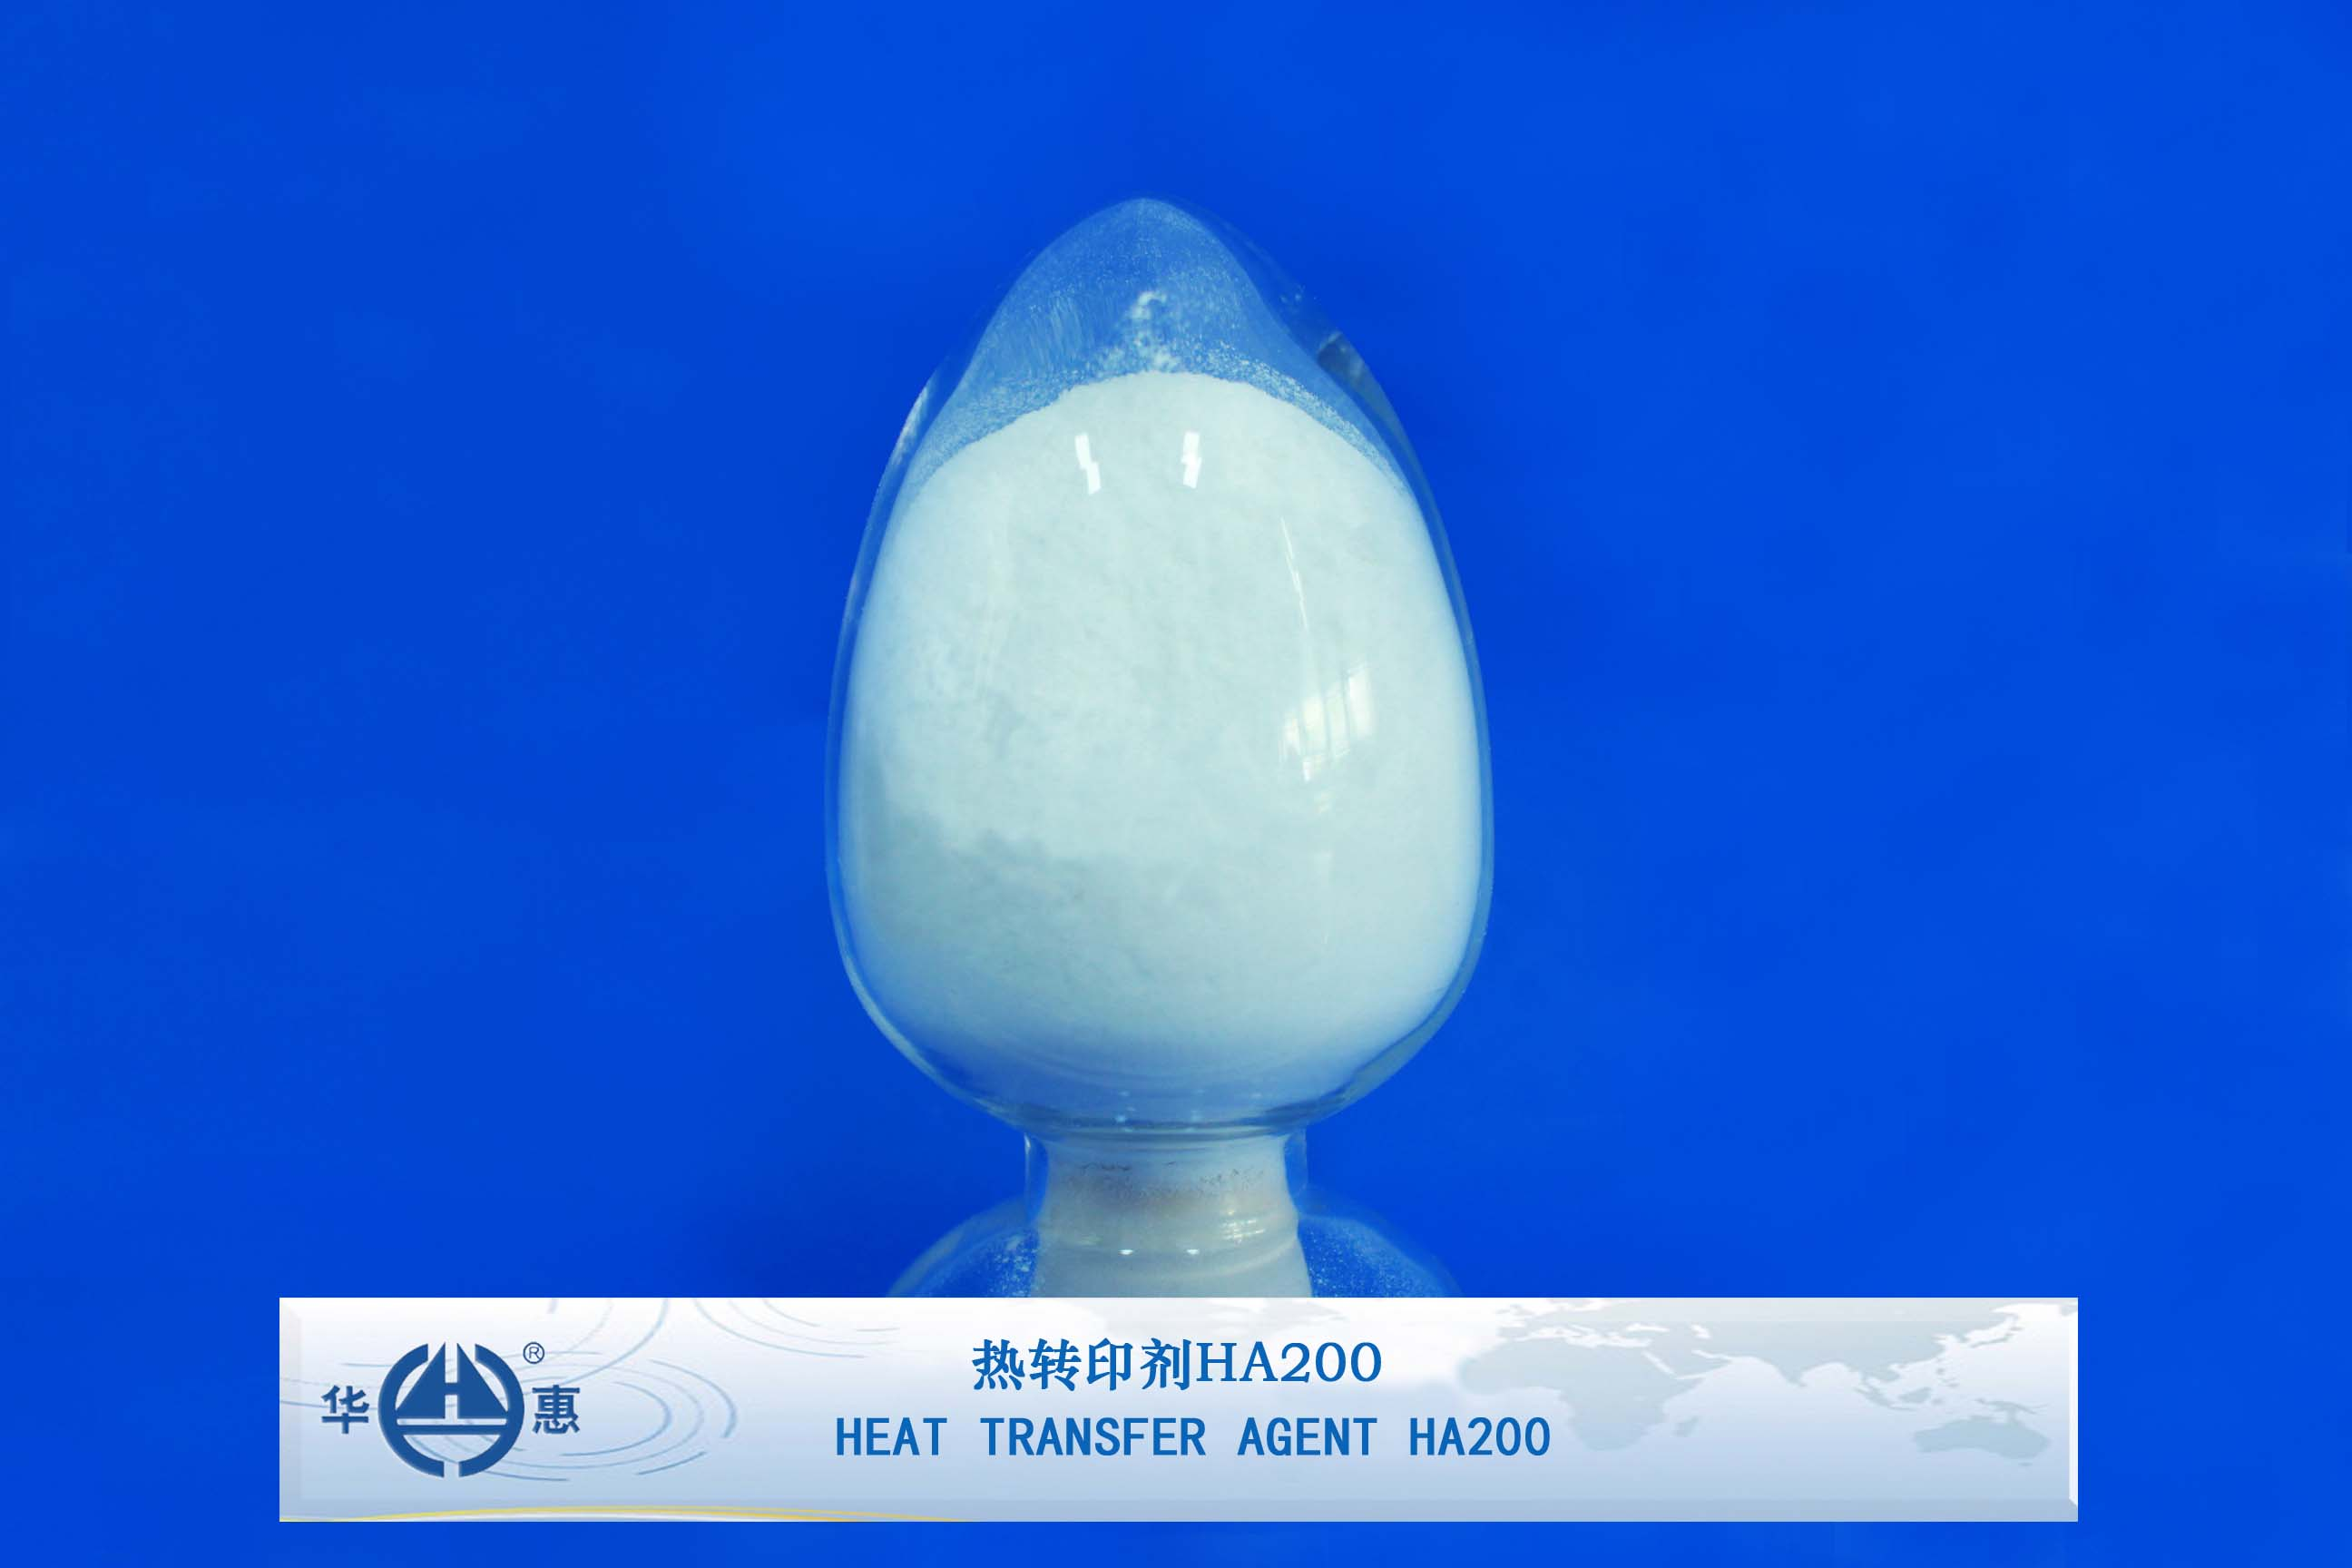 Heat Transfer Agent HA200